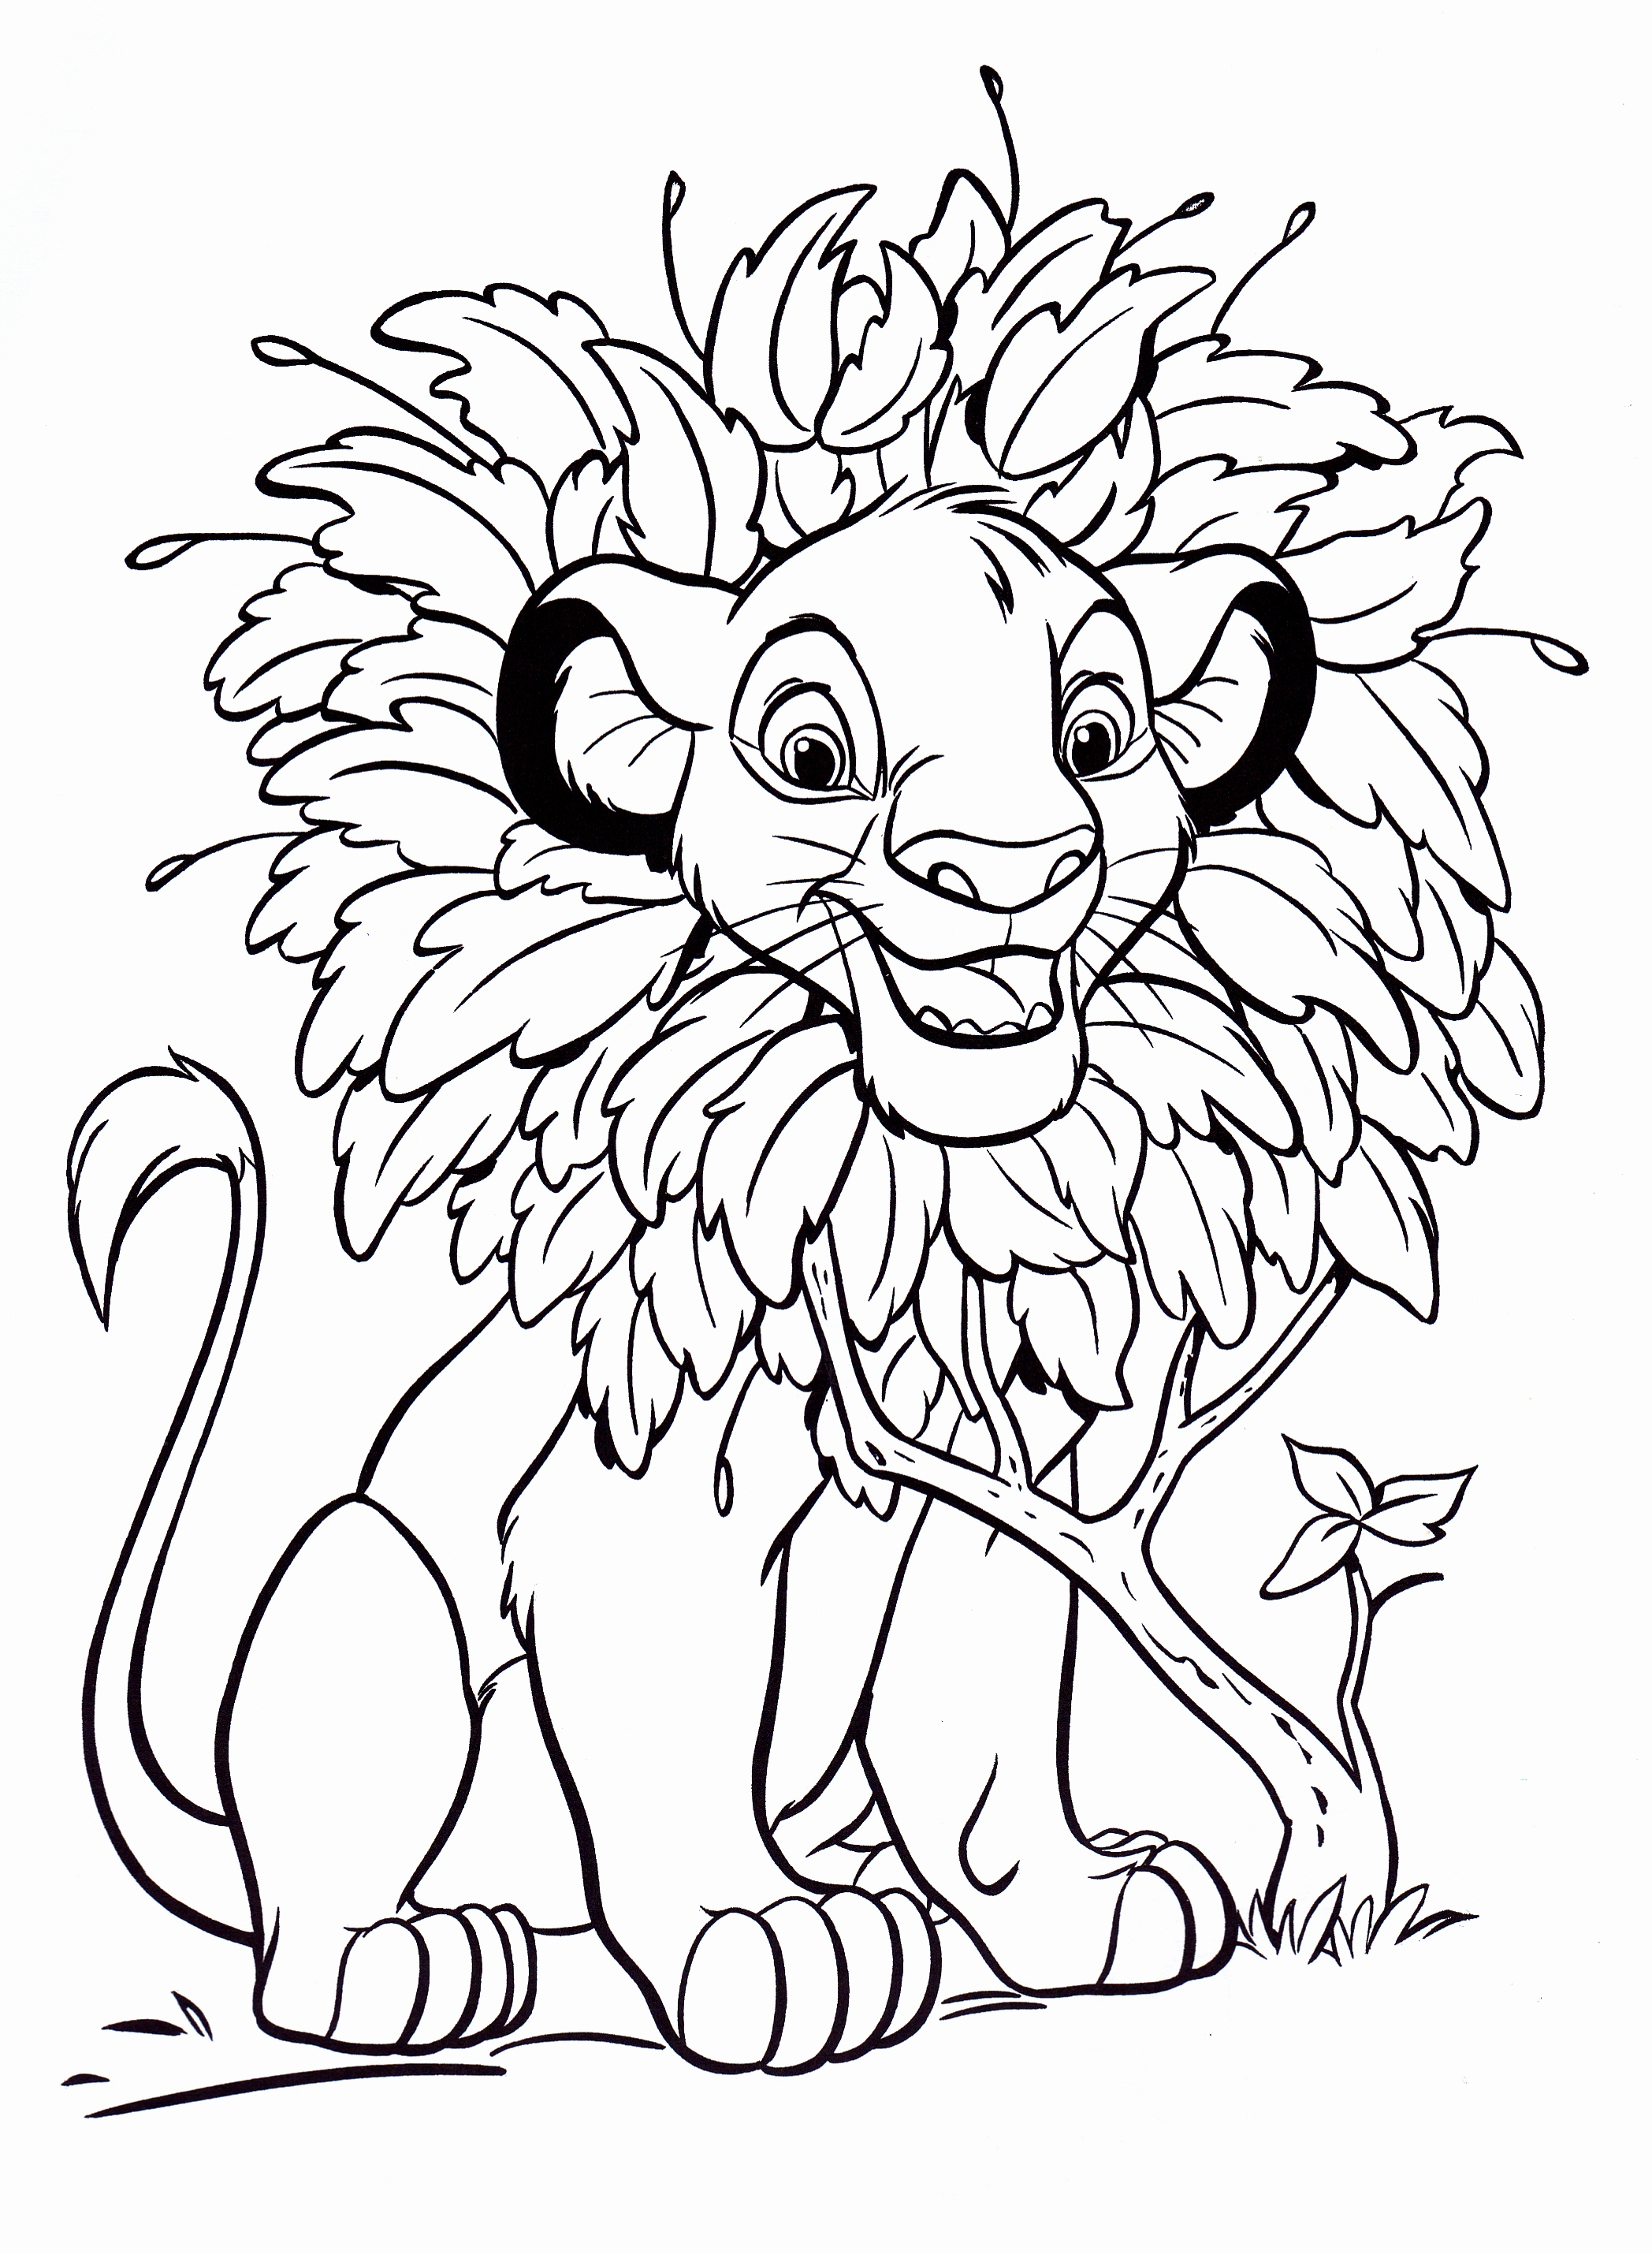 Disney Halloween Coloring Pages #halloweencoloringpages ... | 2859x2096